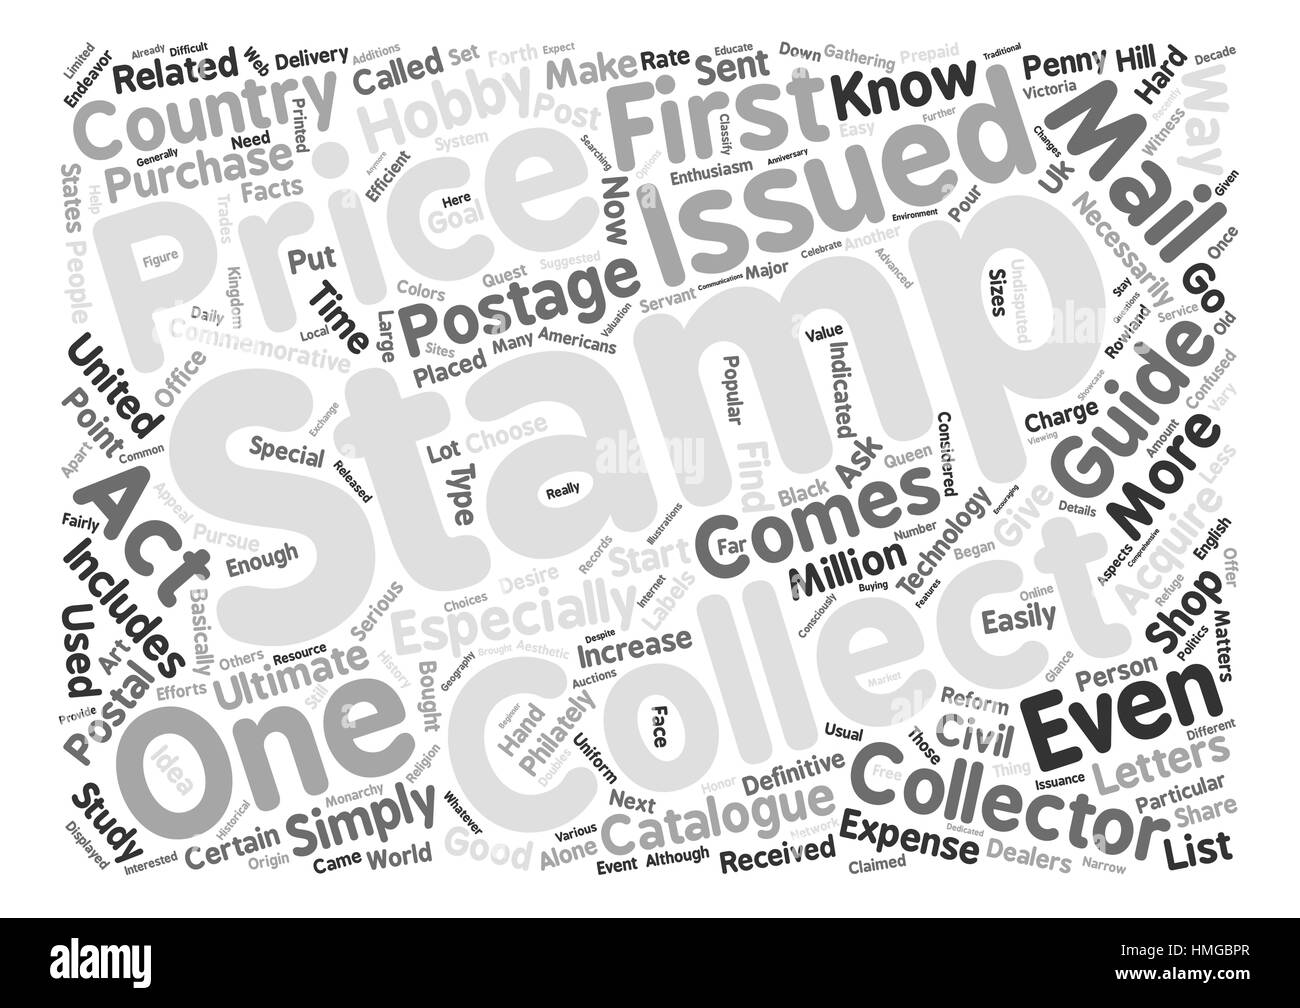 Postal Stamps Black and White Stock Photos & Images - Alamy